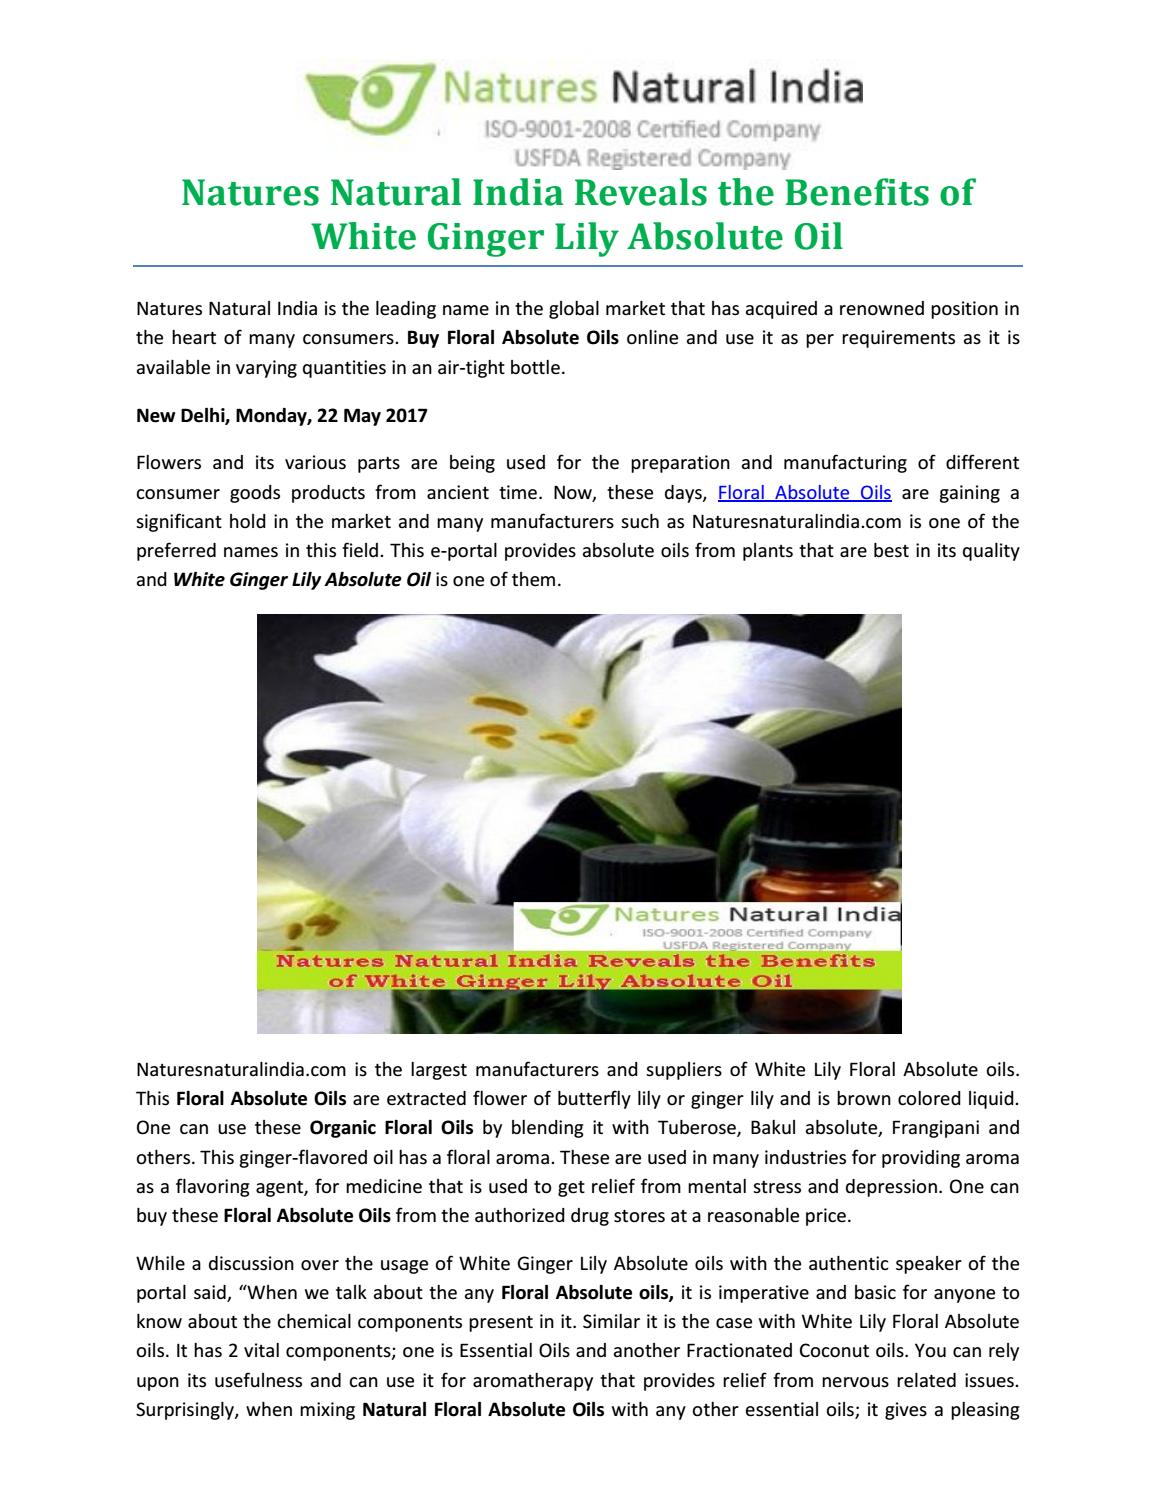 Natures Natural India Reveals The Benefits Of White Ginger Lily